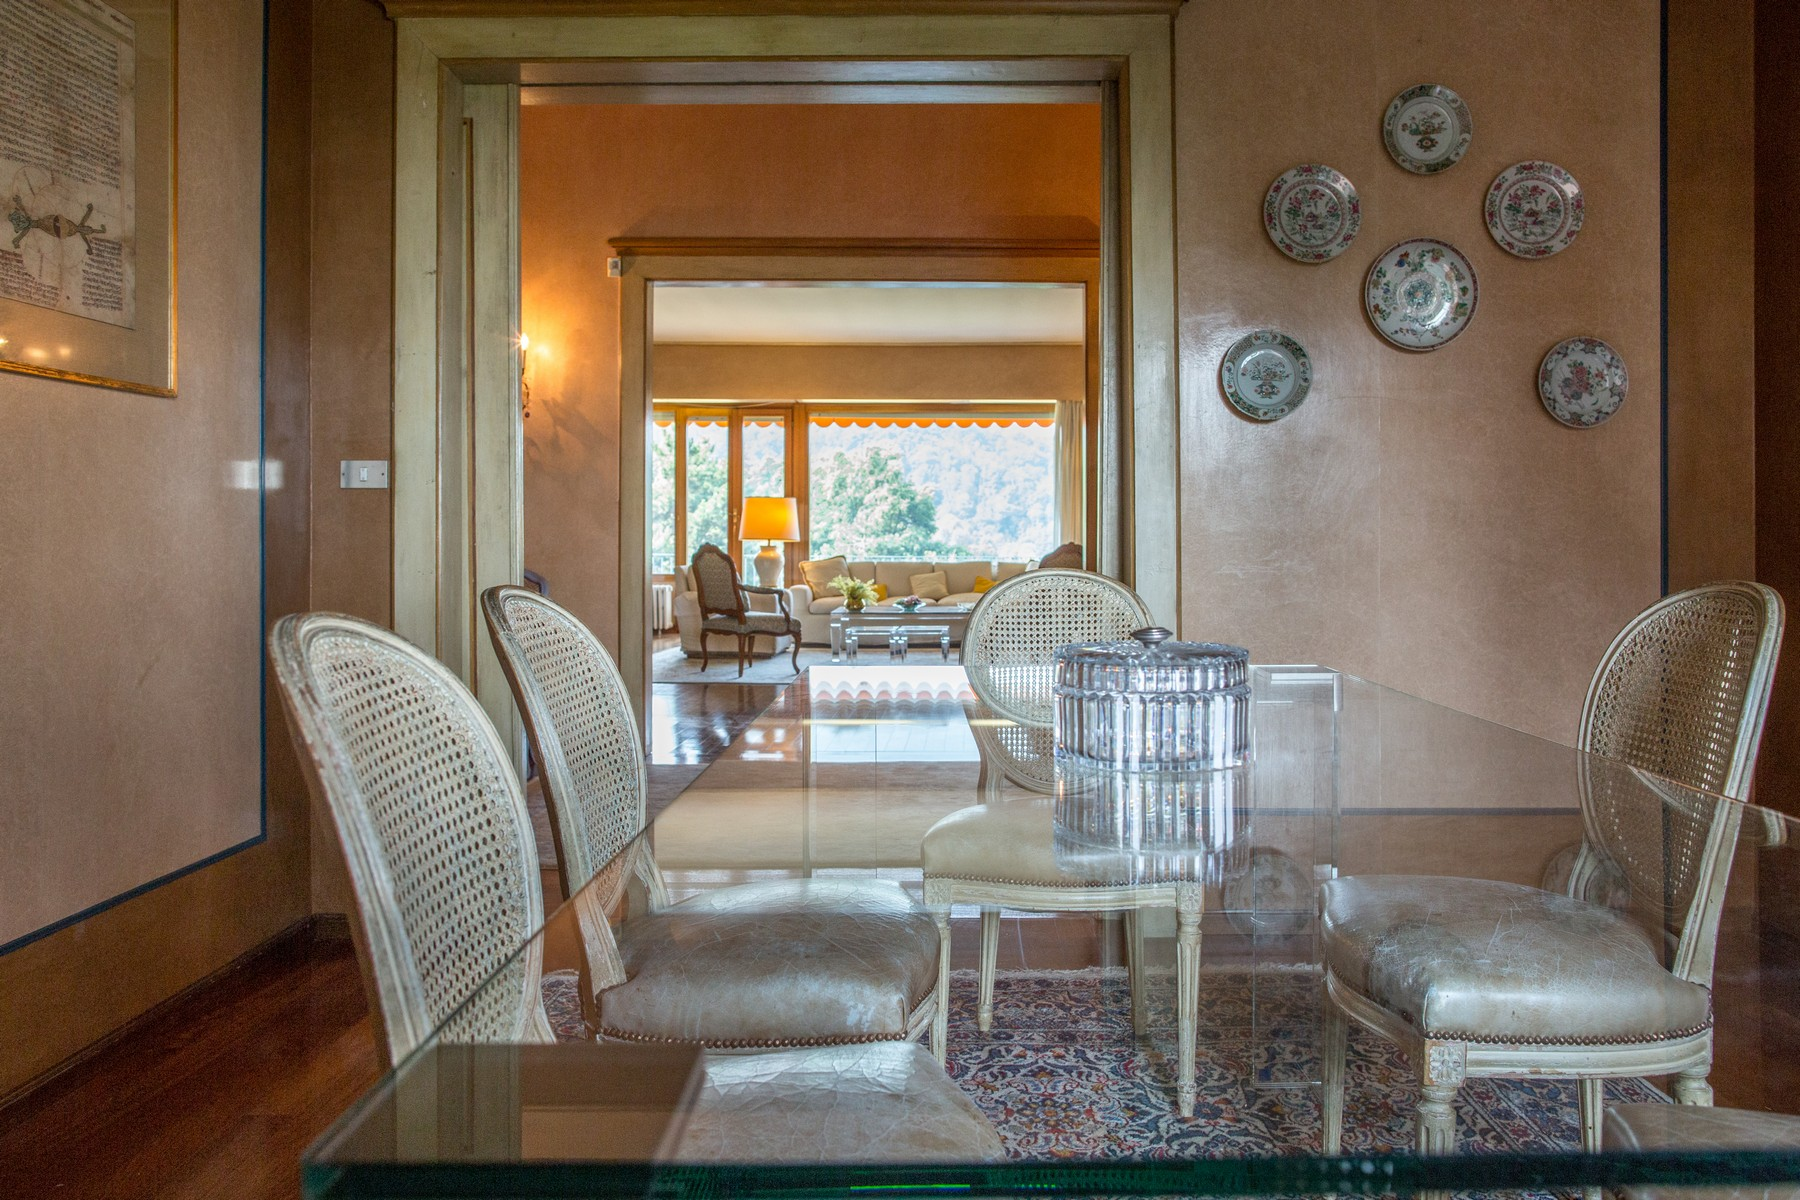 Additional photo for property listing at Elegant apartment on Turin hill Strada San Vincenzo Torino, Turin 10131 Italia